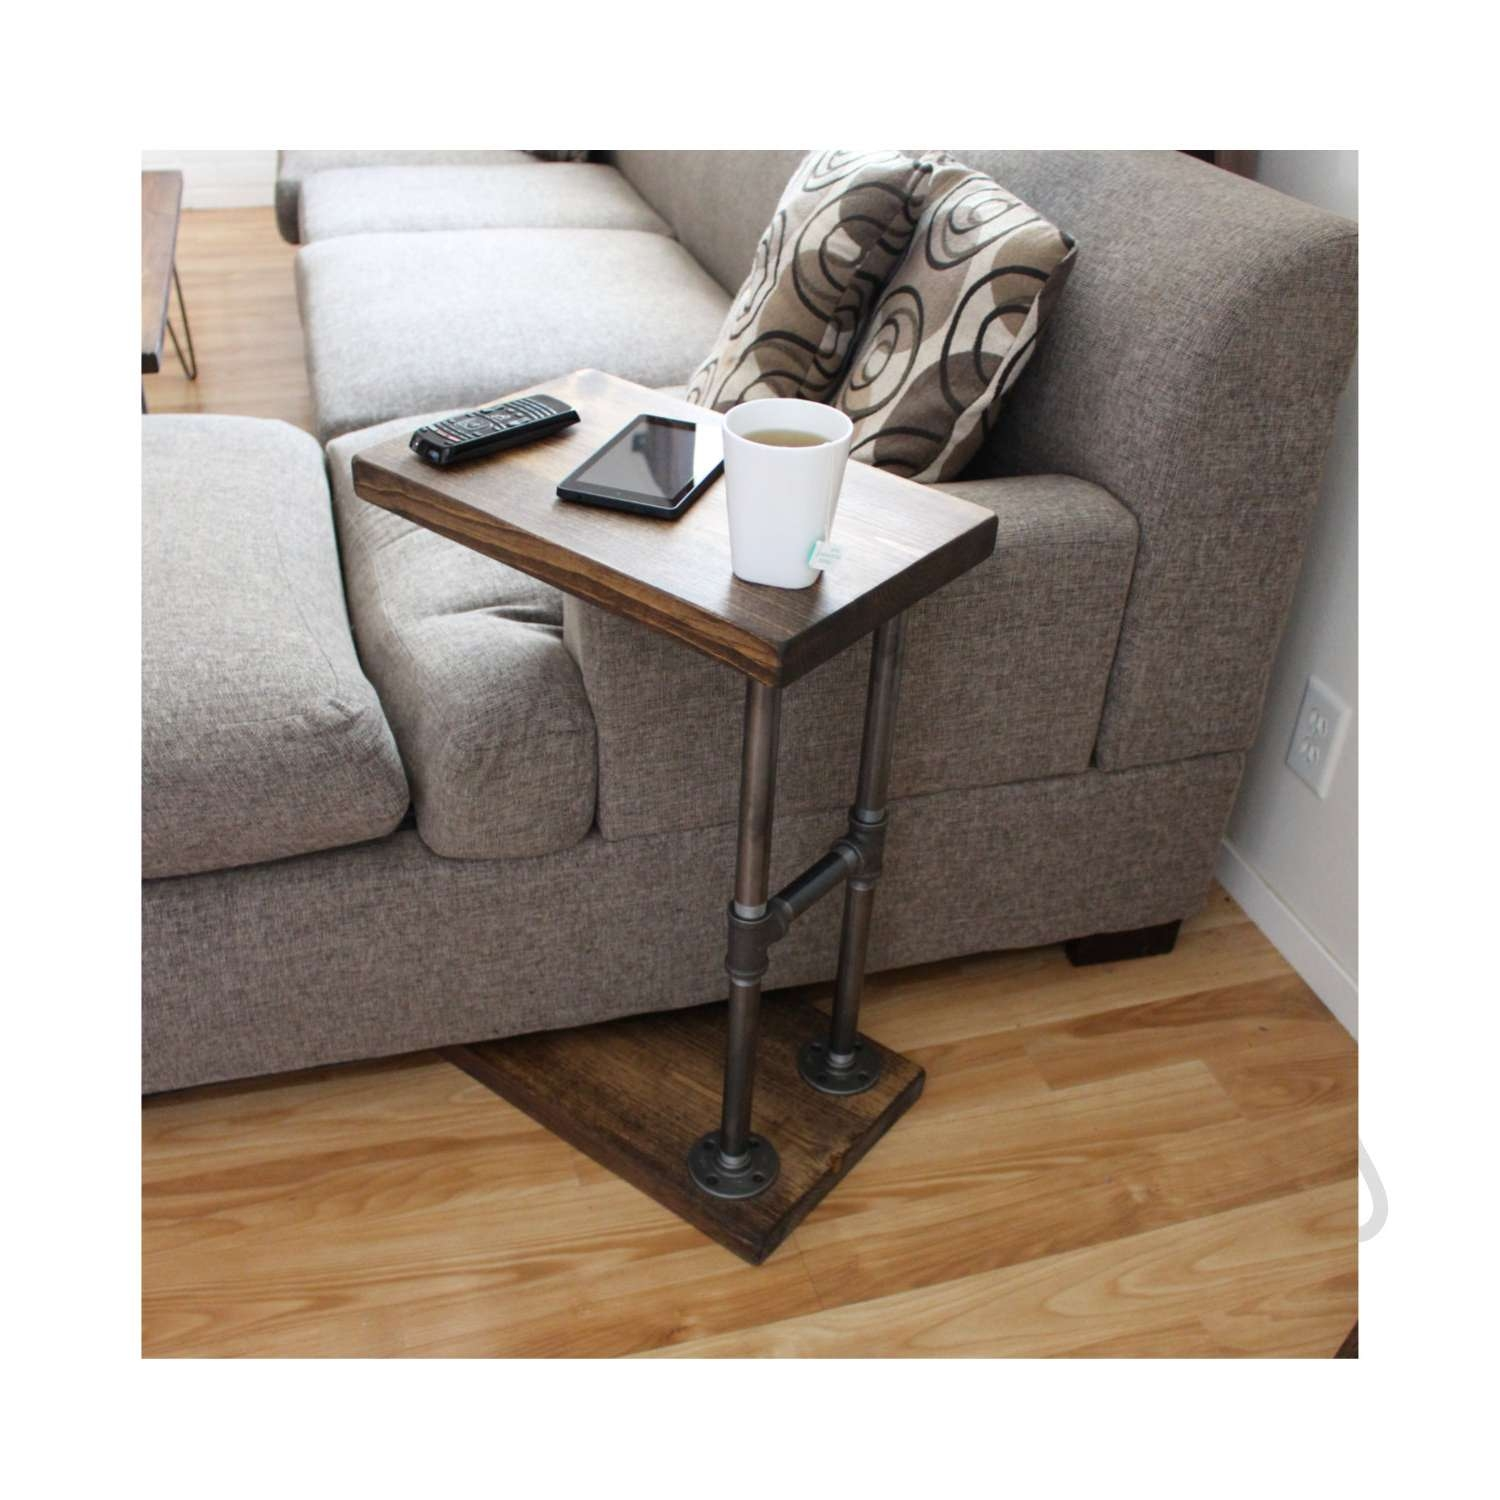 Most Current C Coffee Tables Regarding Industrial Furniture Coffee Table Side Table Laptop Stand (View 11 of 20)